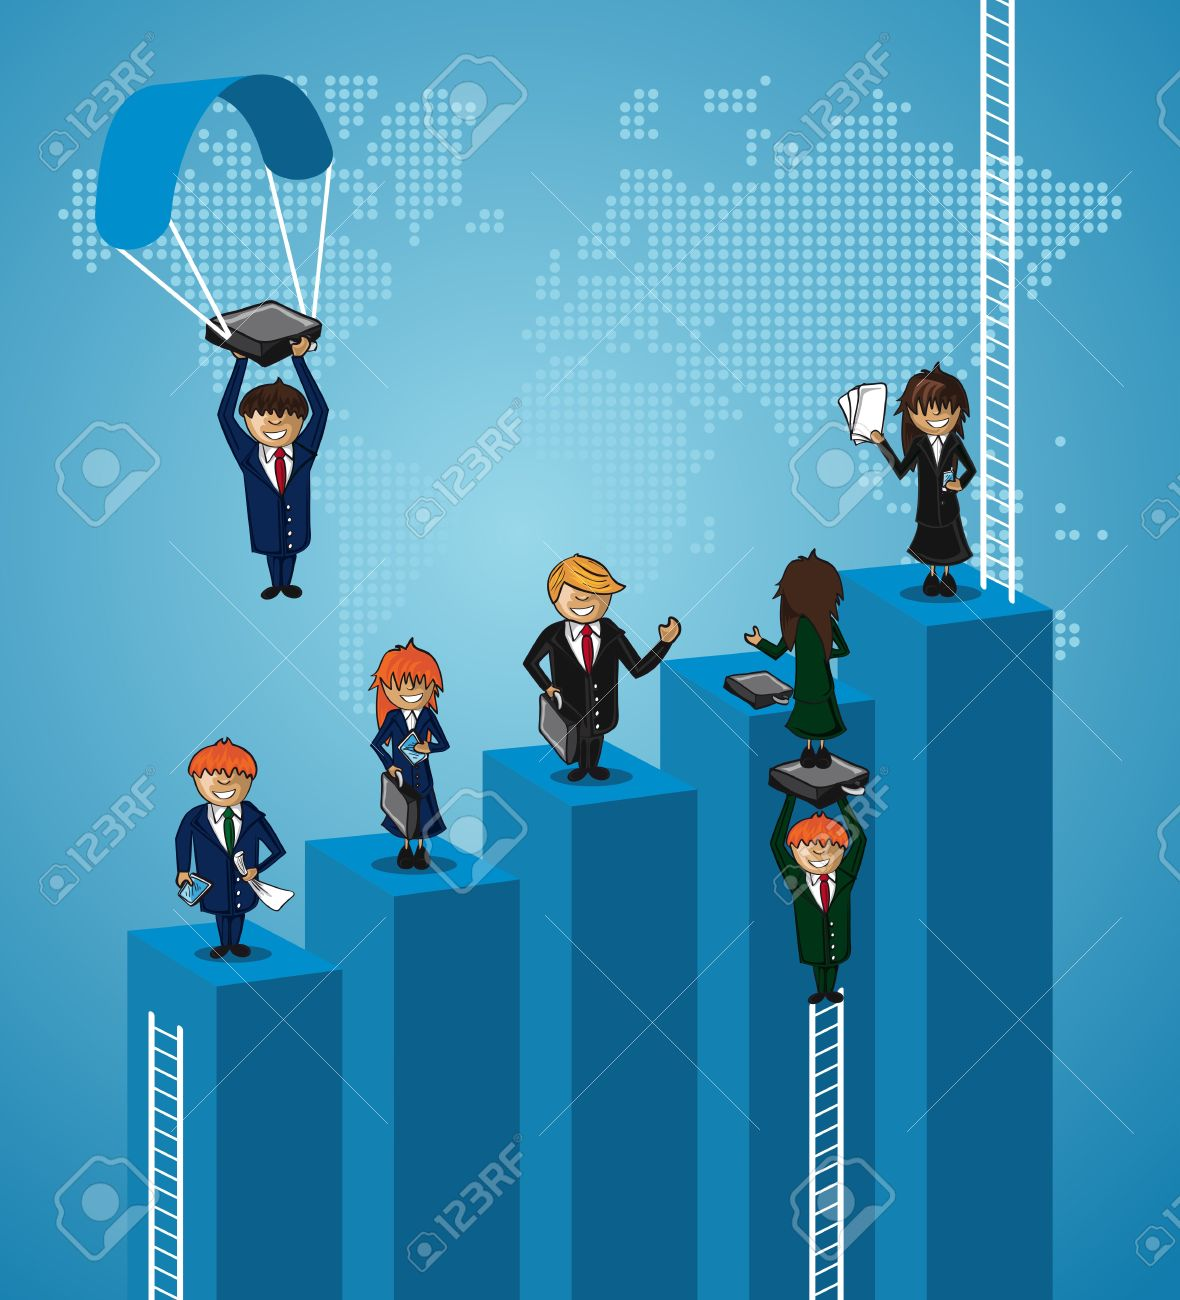 Teamwork world map business people with ladders concept  layered